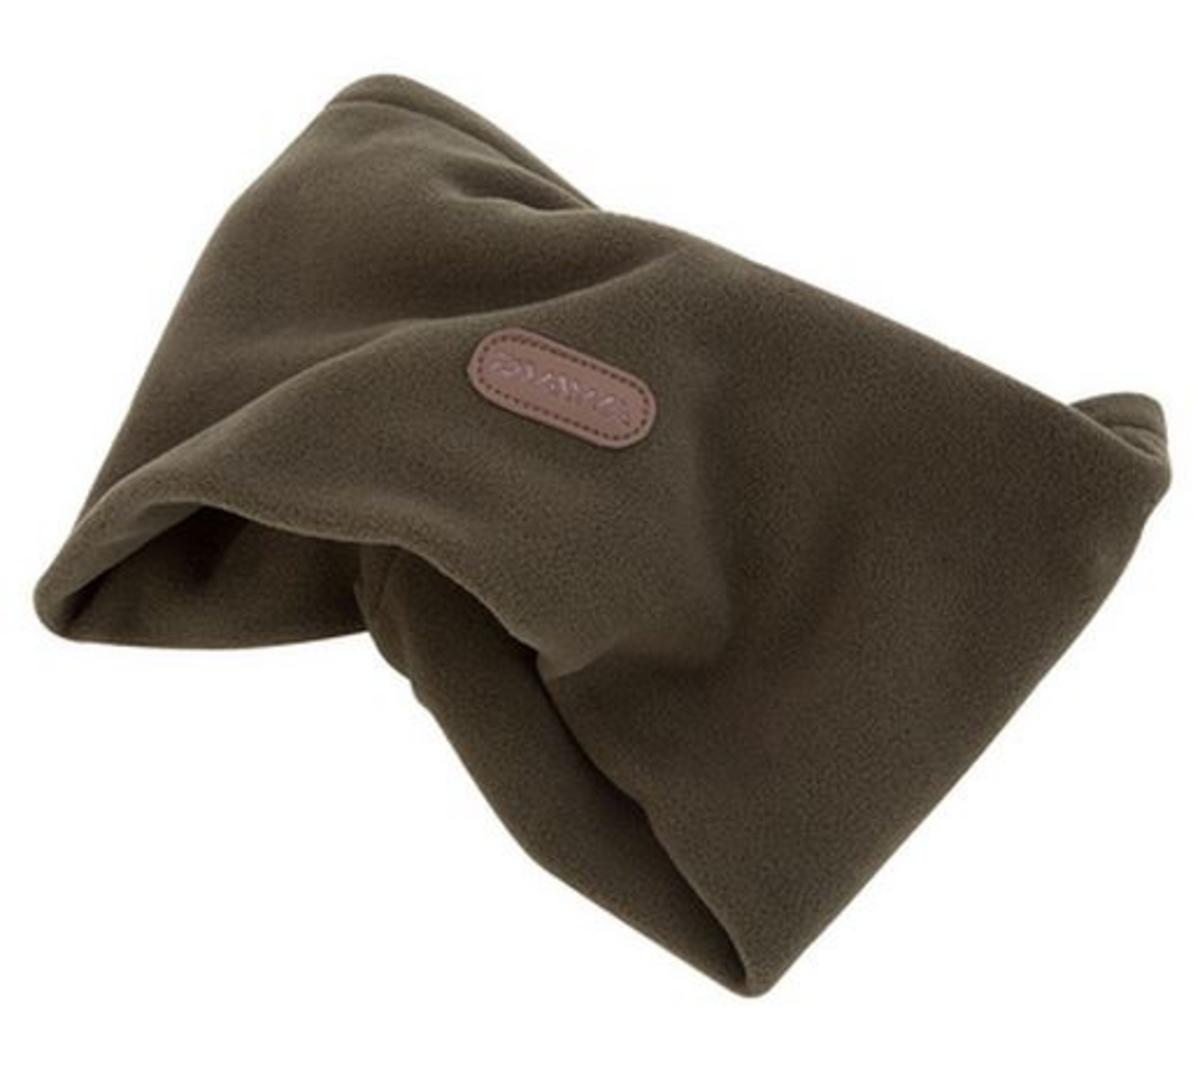 NEW DAIWA INFINITY FLEECE NECK WARMER OLIVE MODEL NO. DFNW